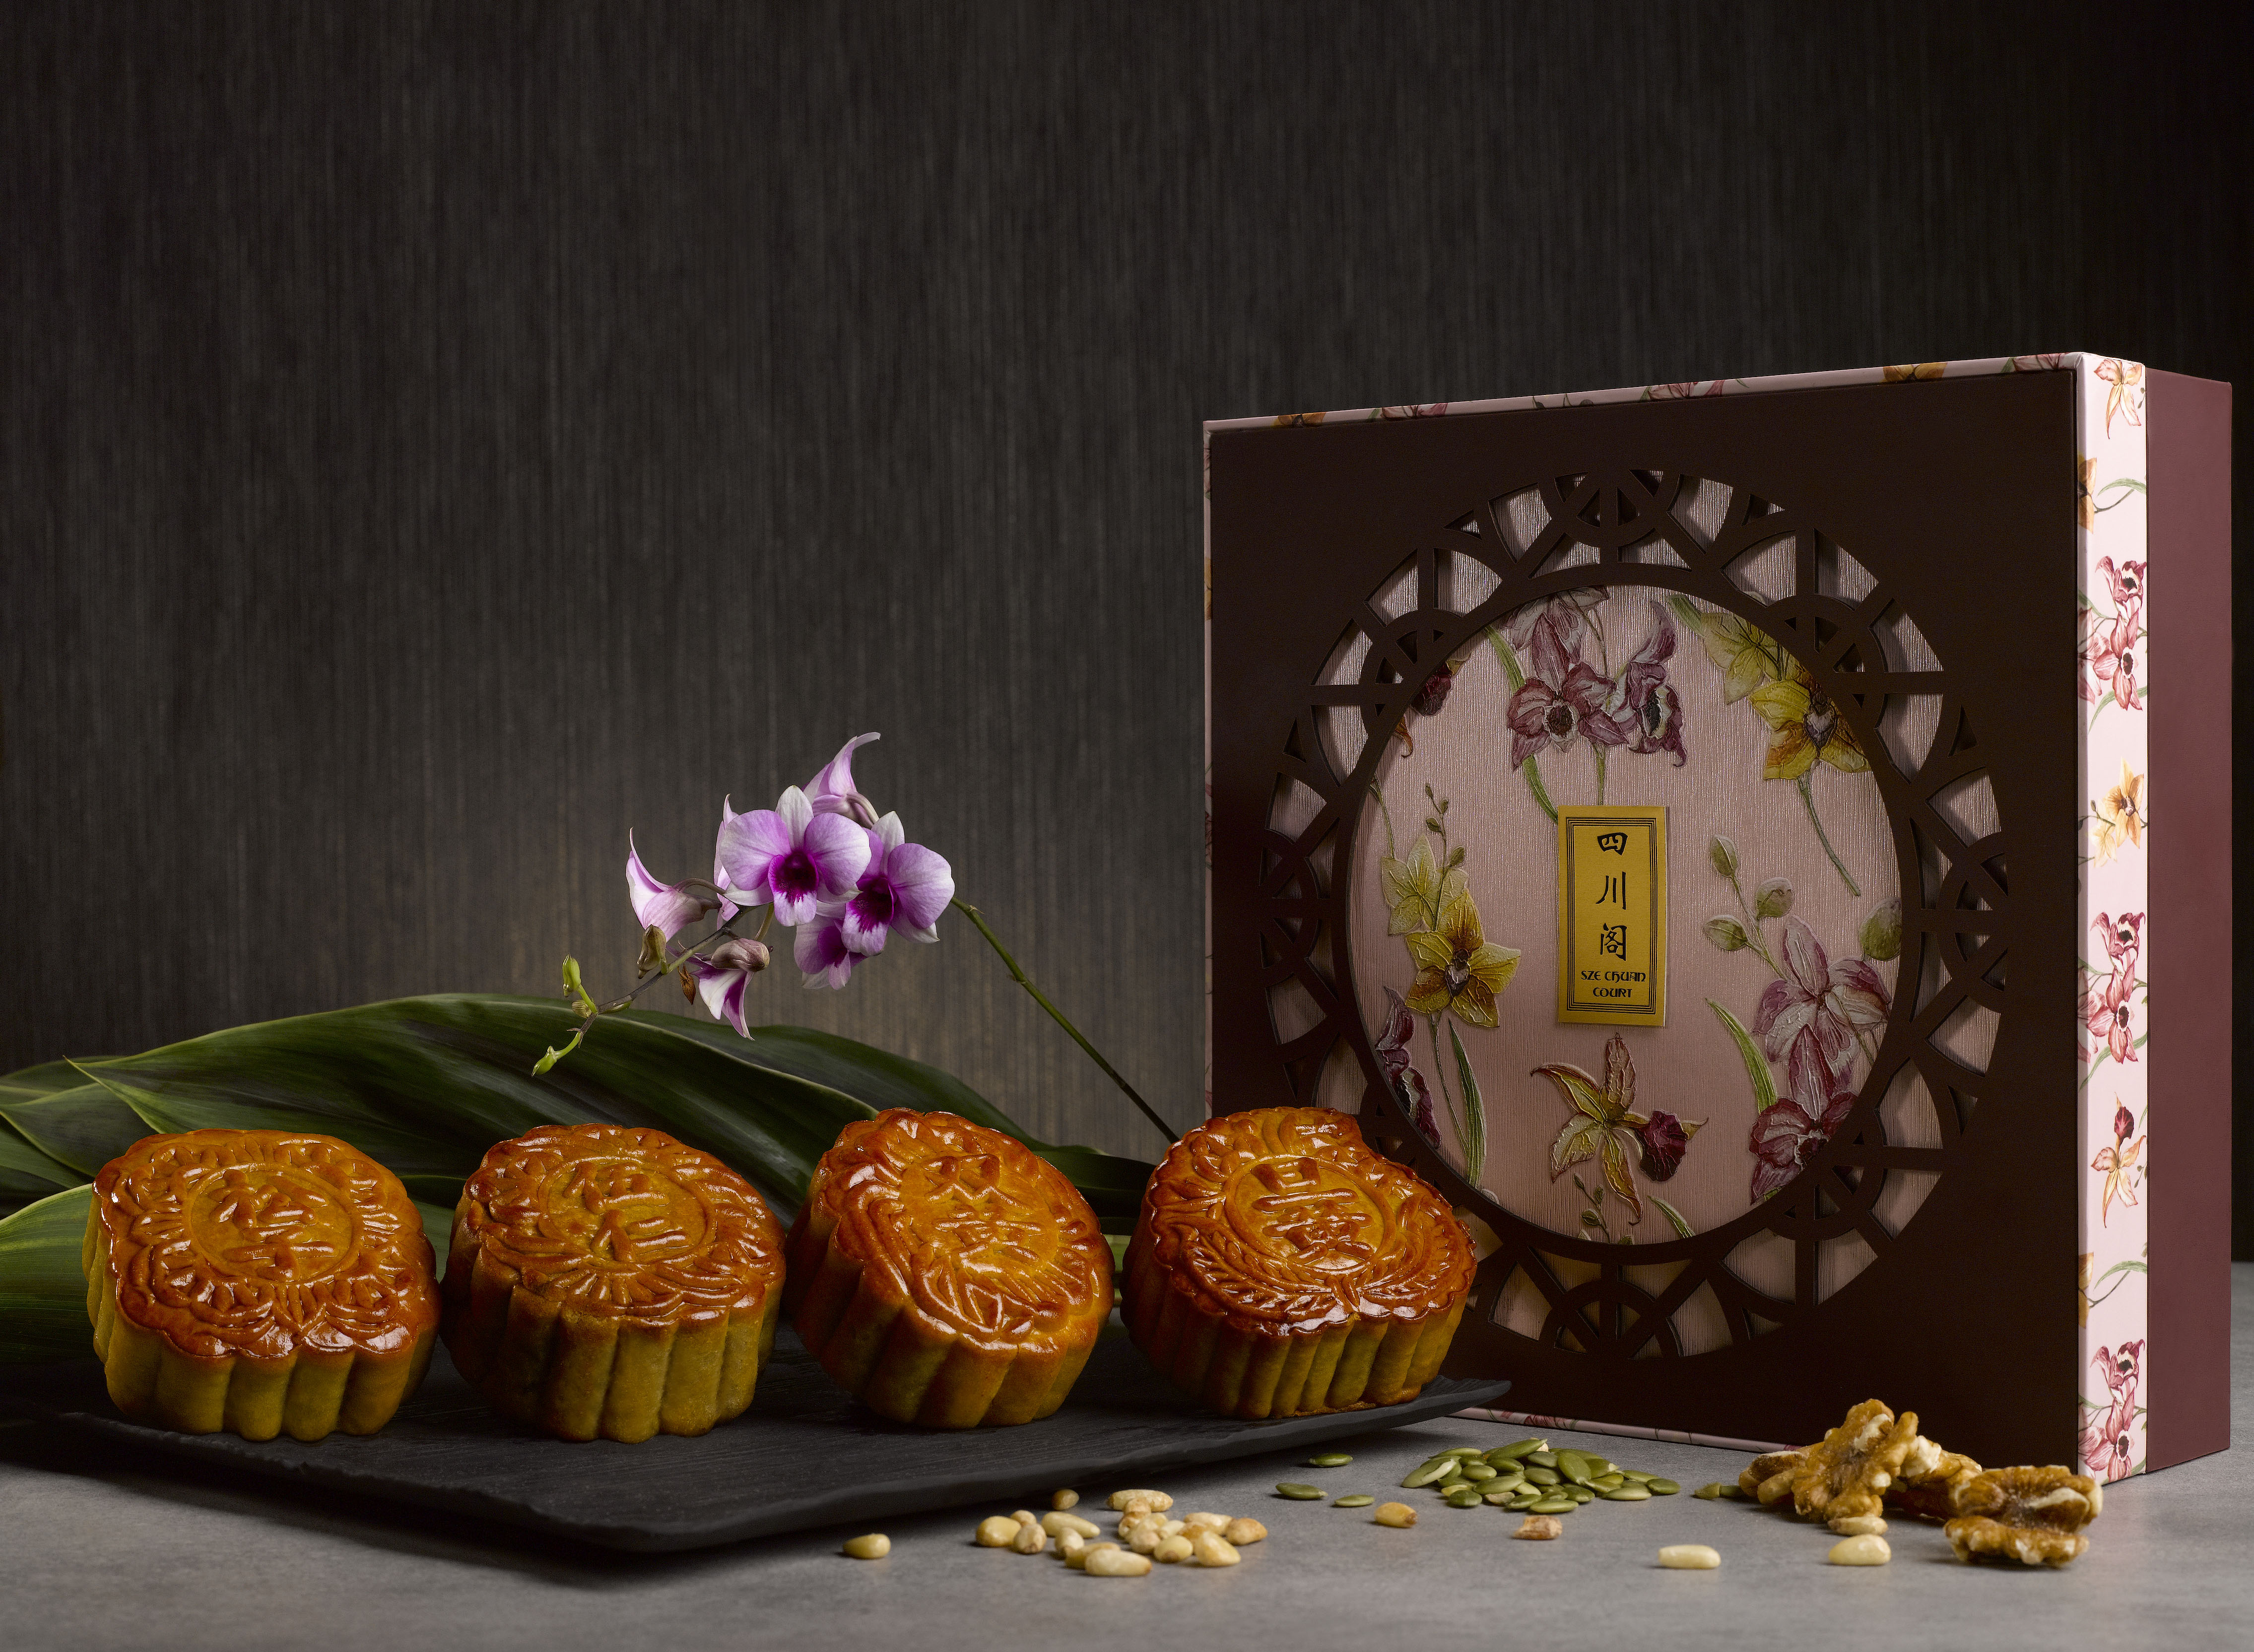 Szechuan Court_Selection of baked mooncakes